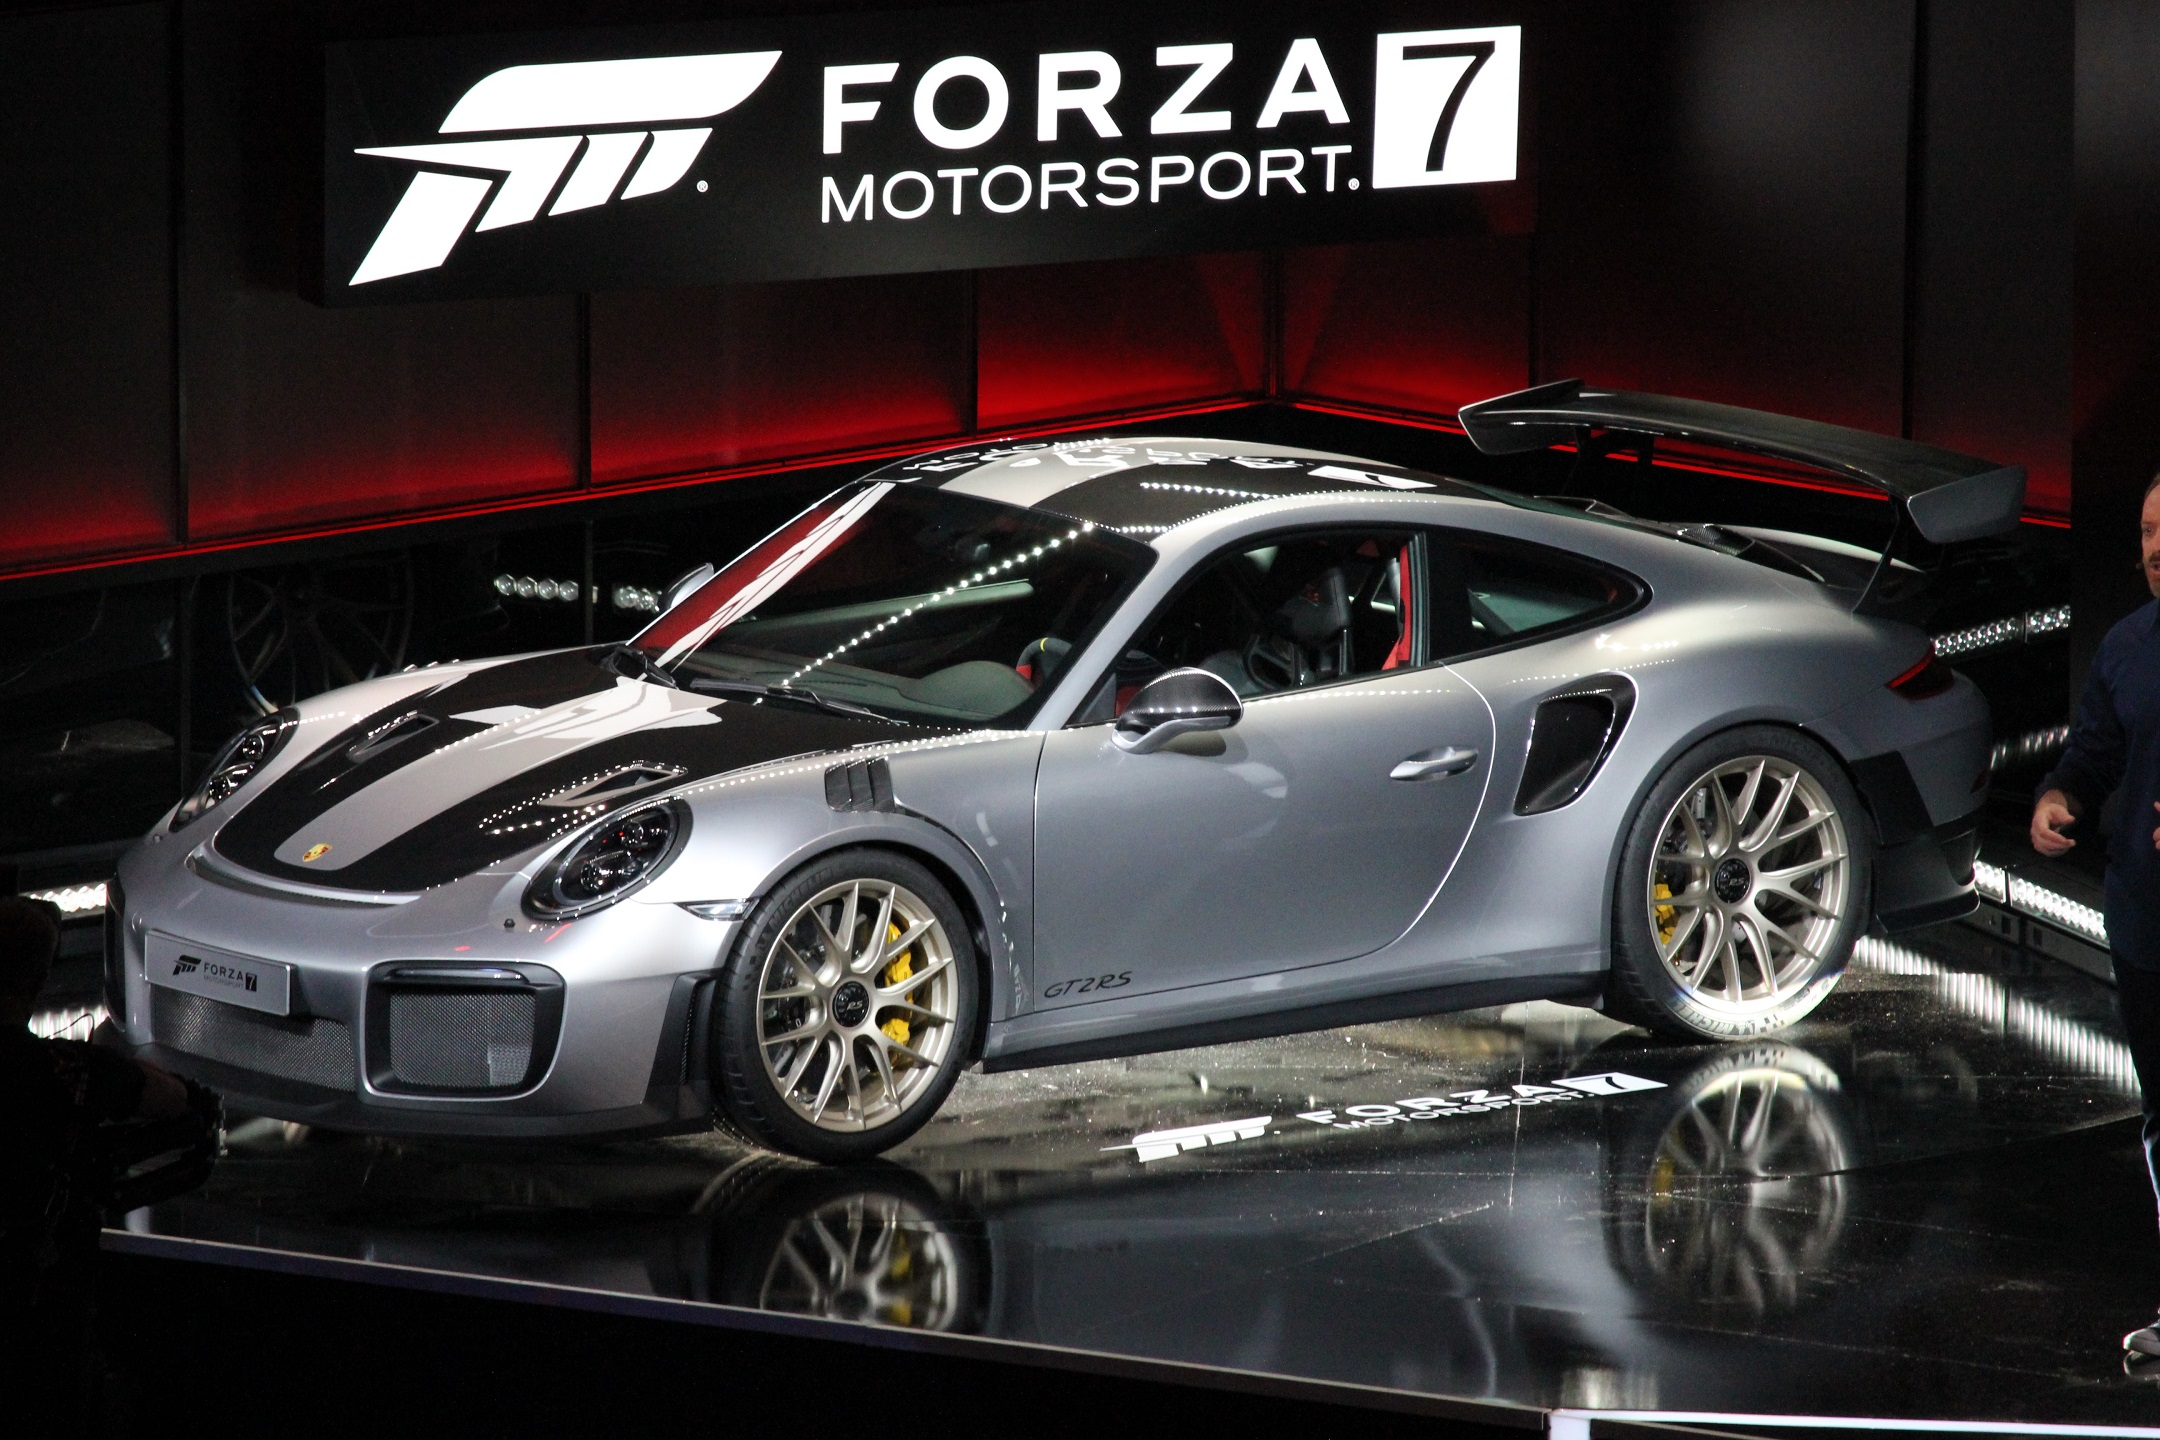 Porsche 991 GT2 RS confirmed as Forza Motorsport 7's cover car